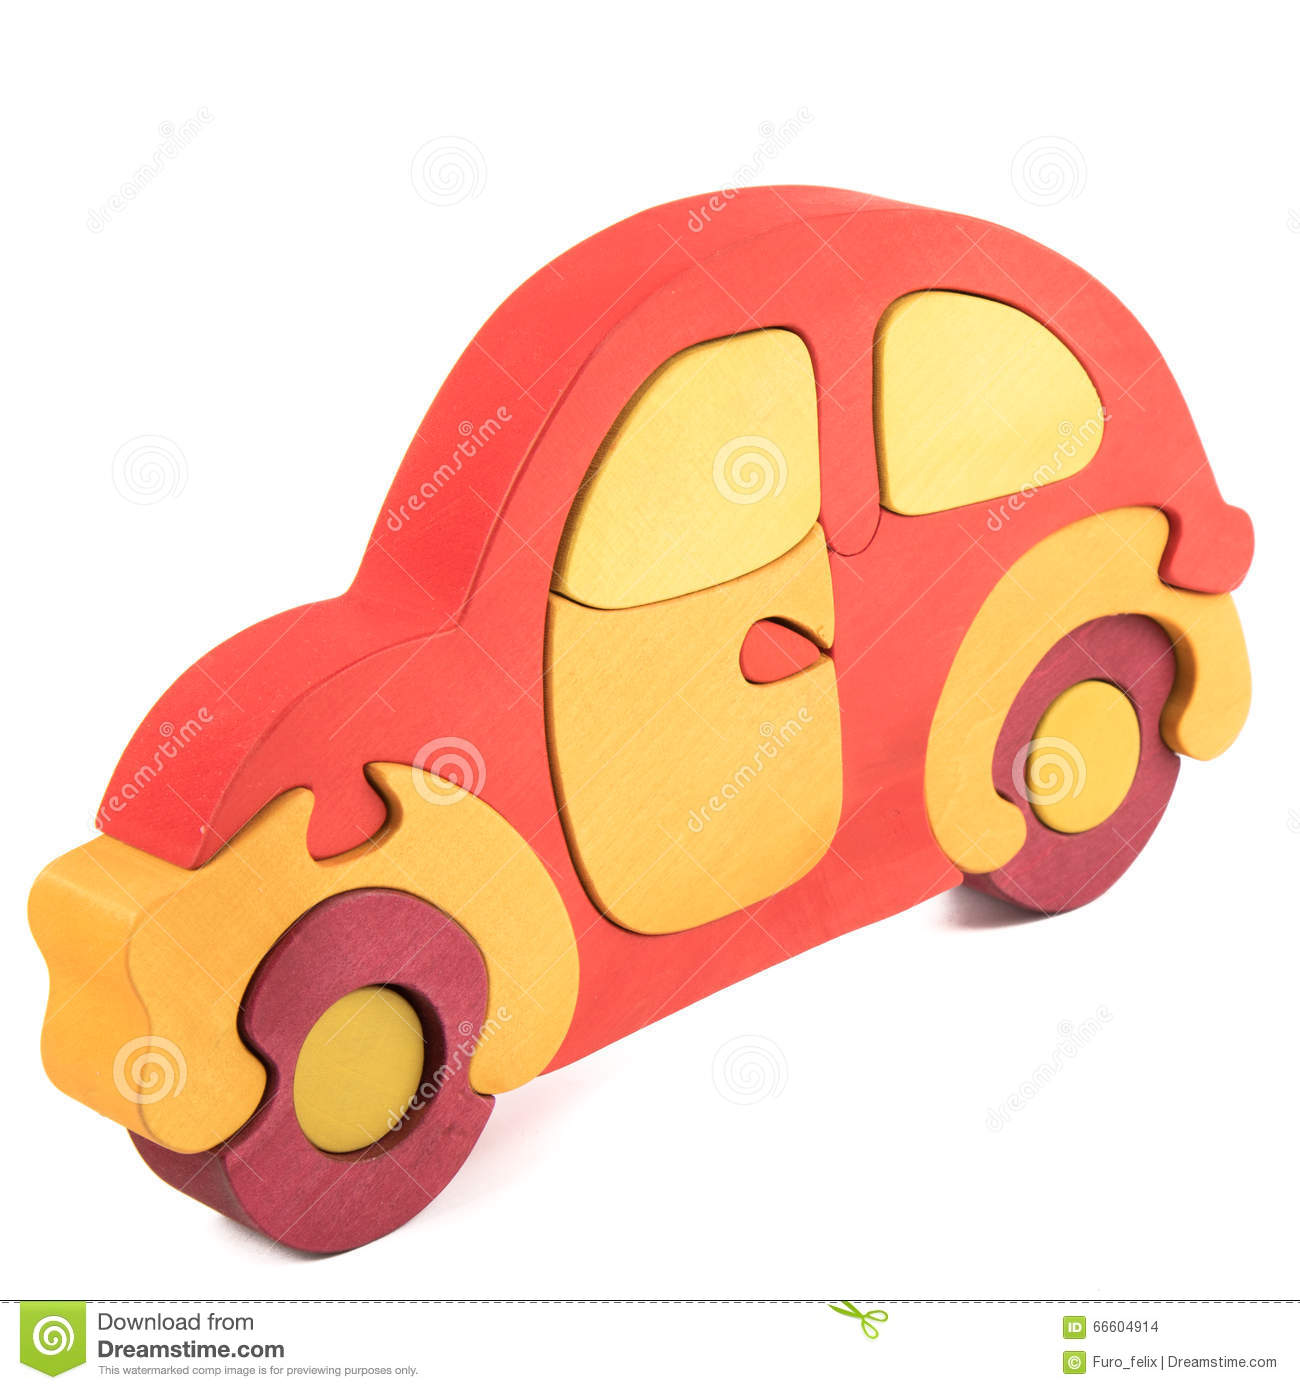 Wooden Car Puzzle Toy Stock Photo.